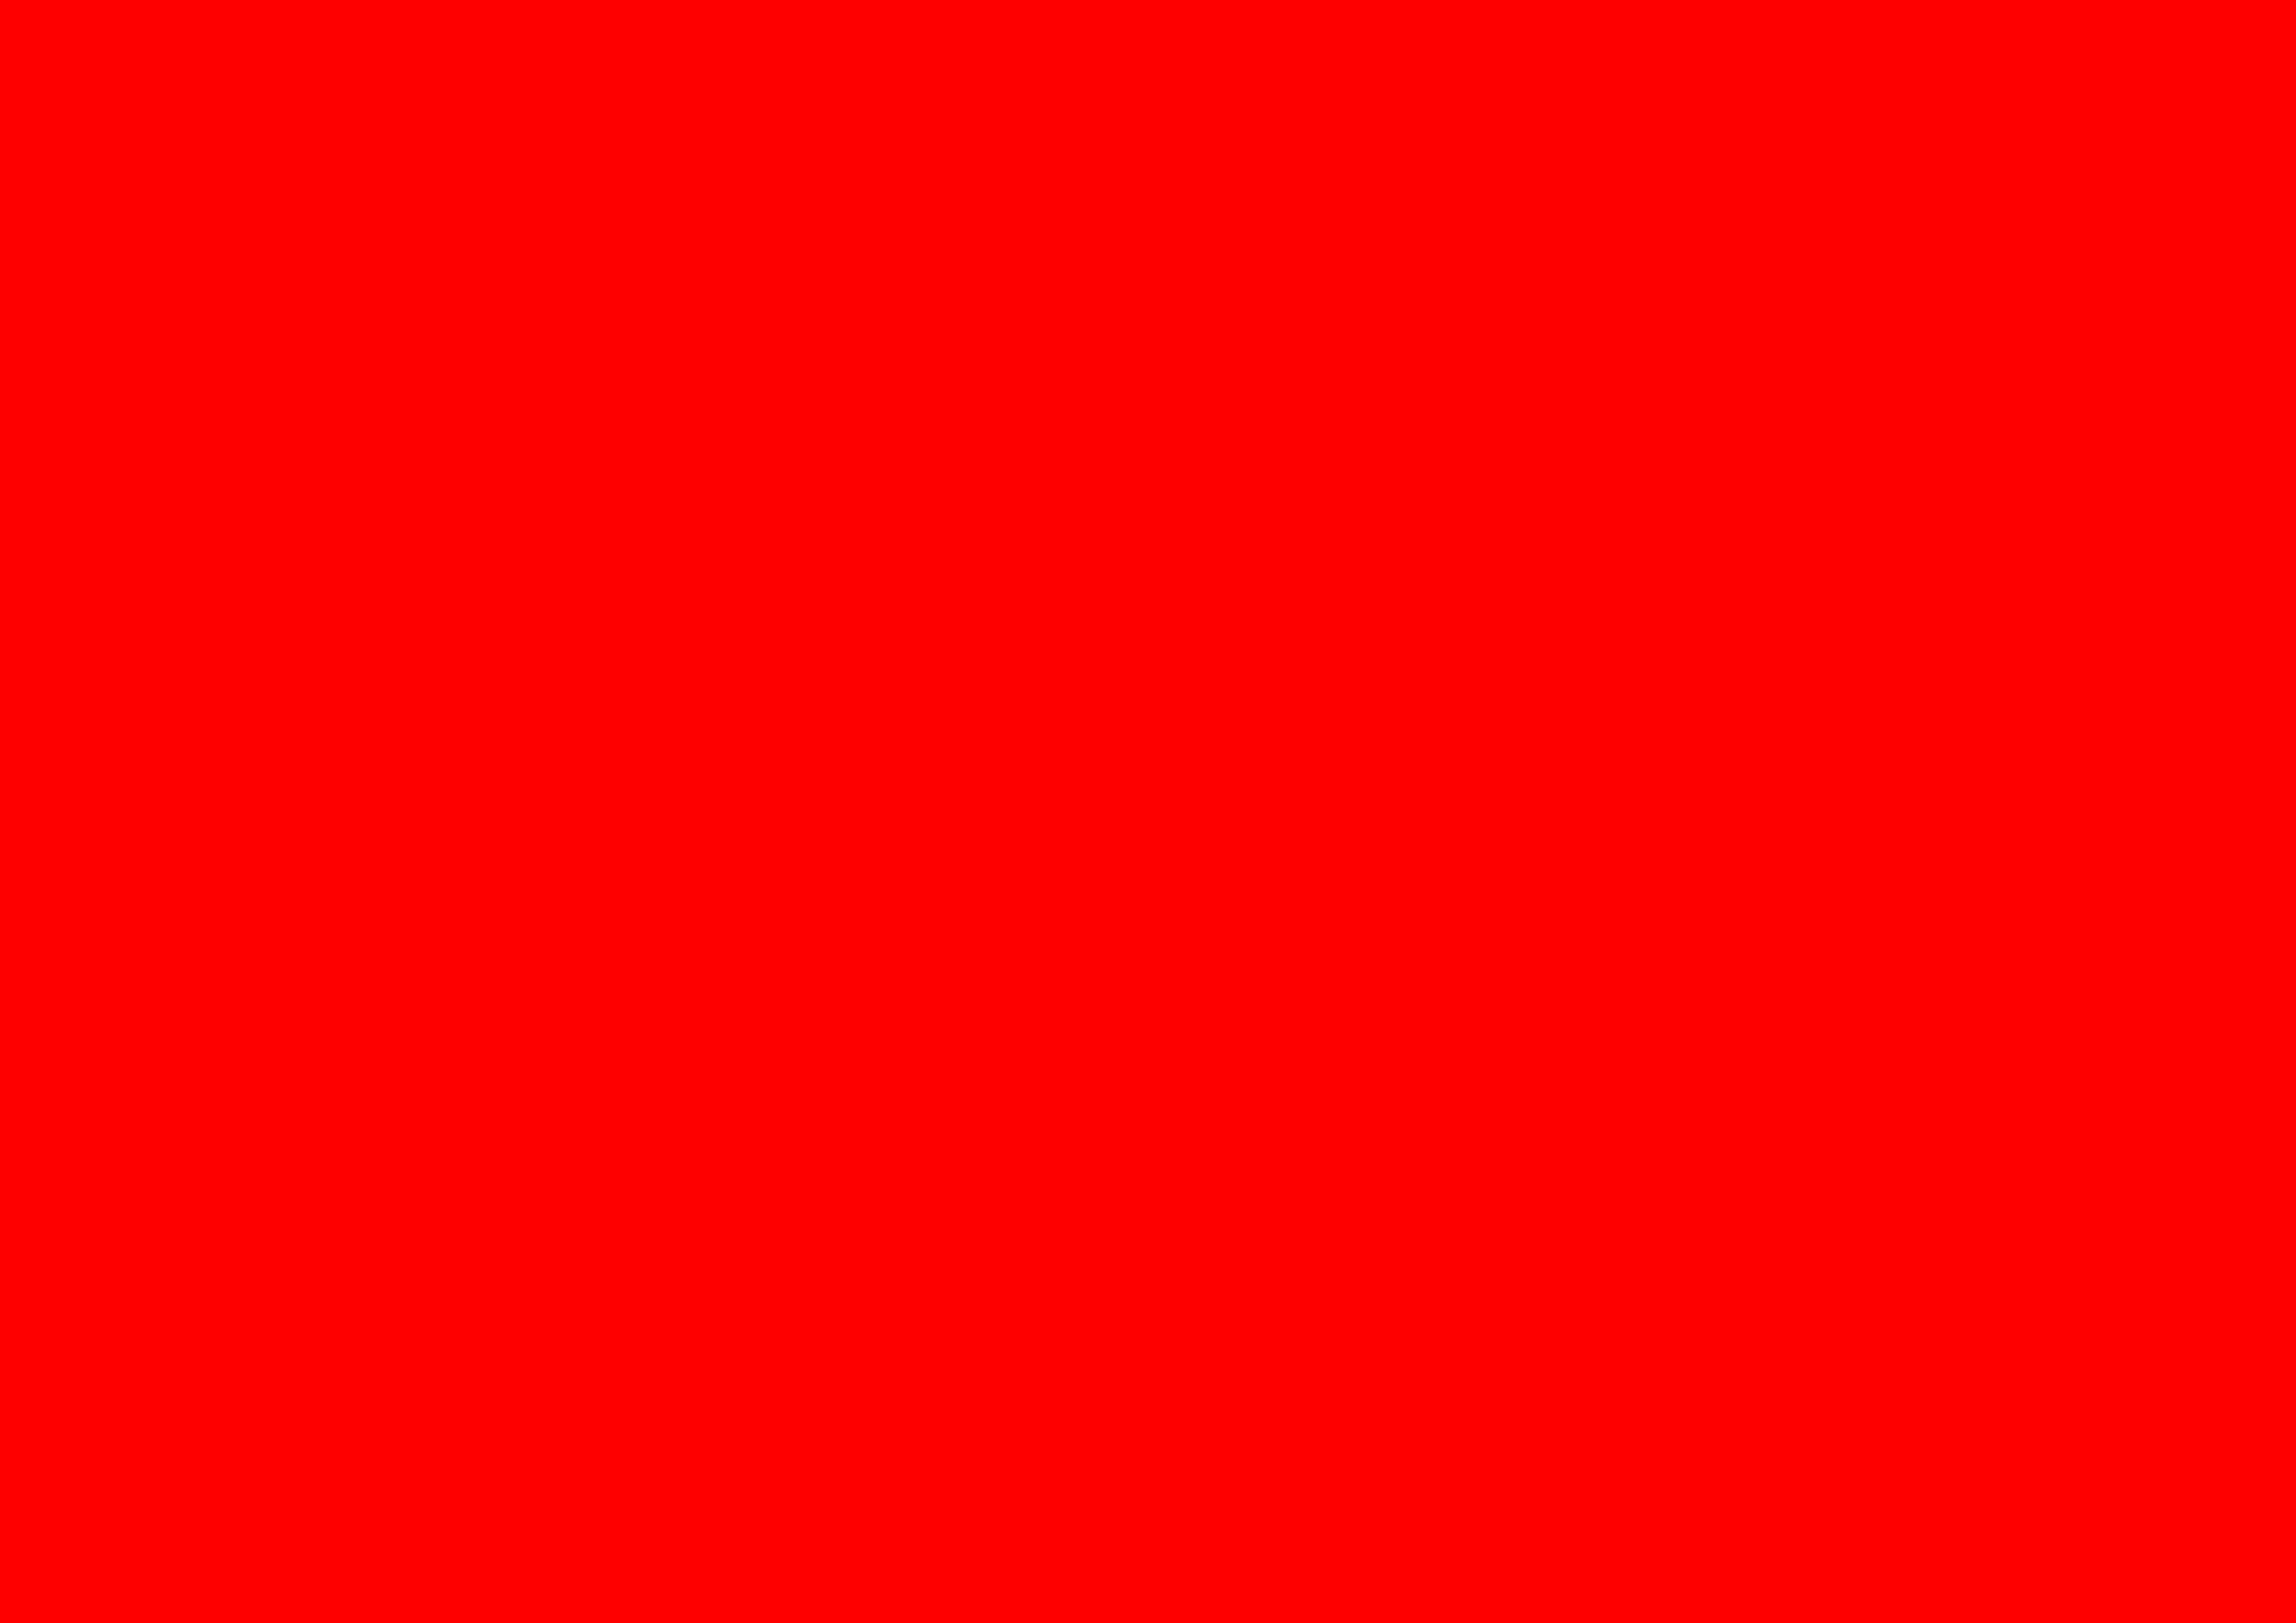 3508x2480 Red Solid Color Background